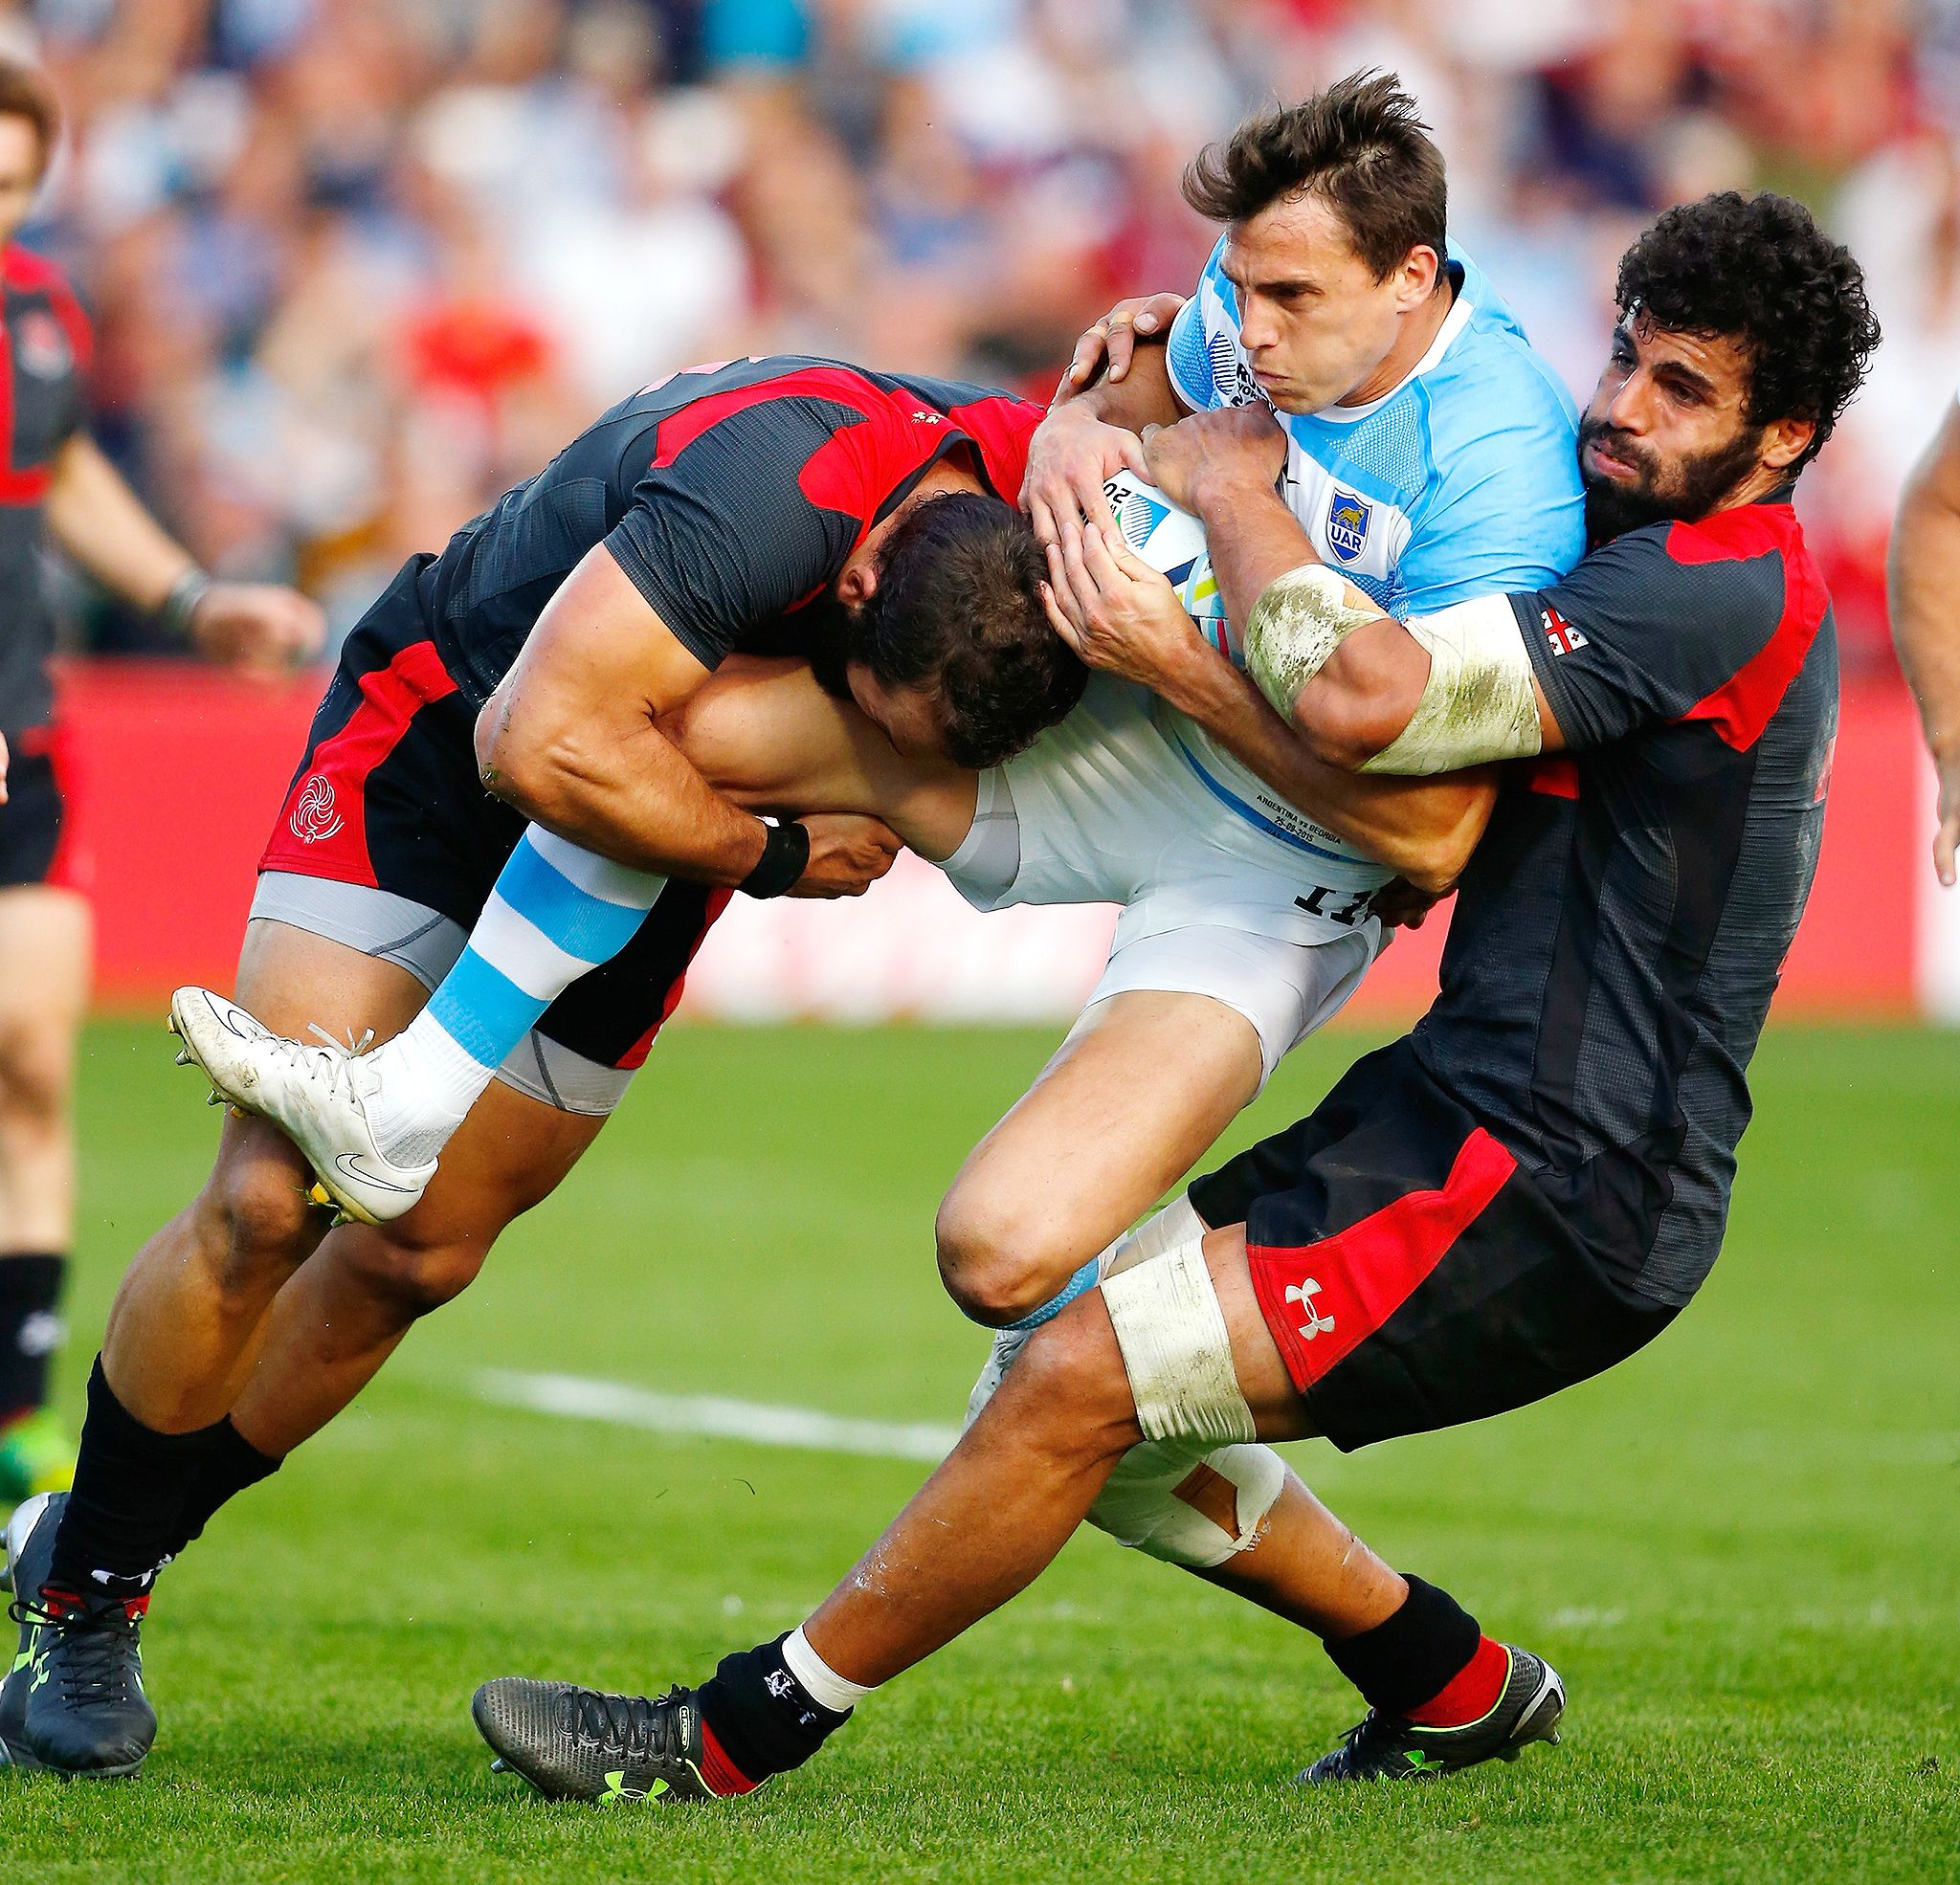 Photos: 2015 Rugby World Cup